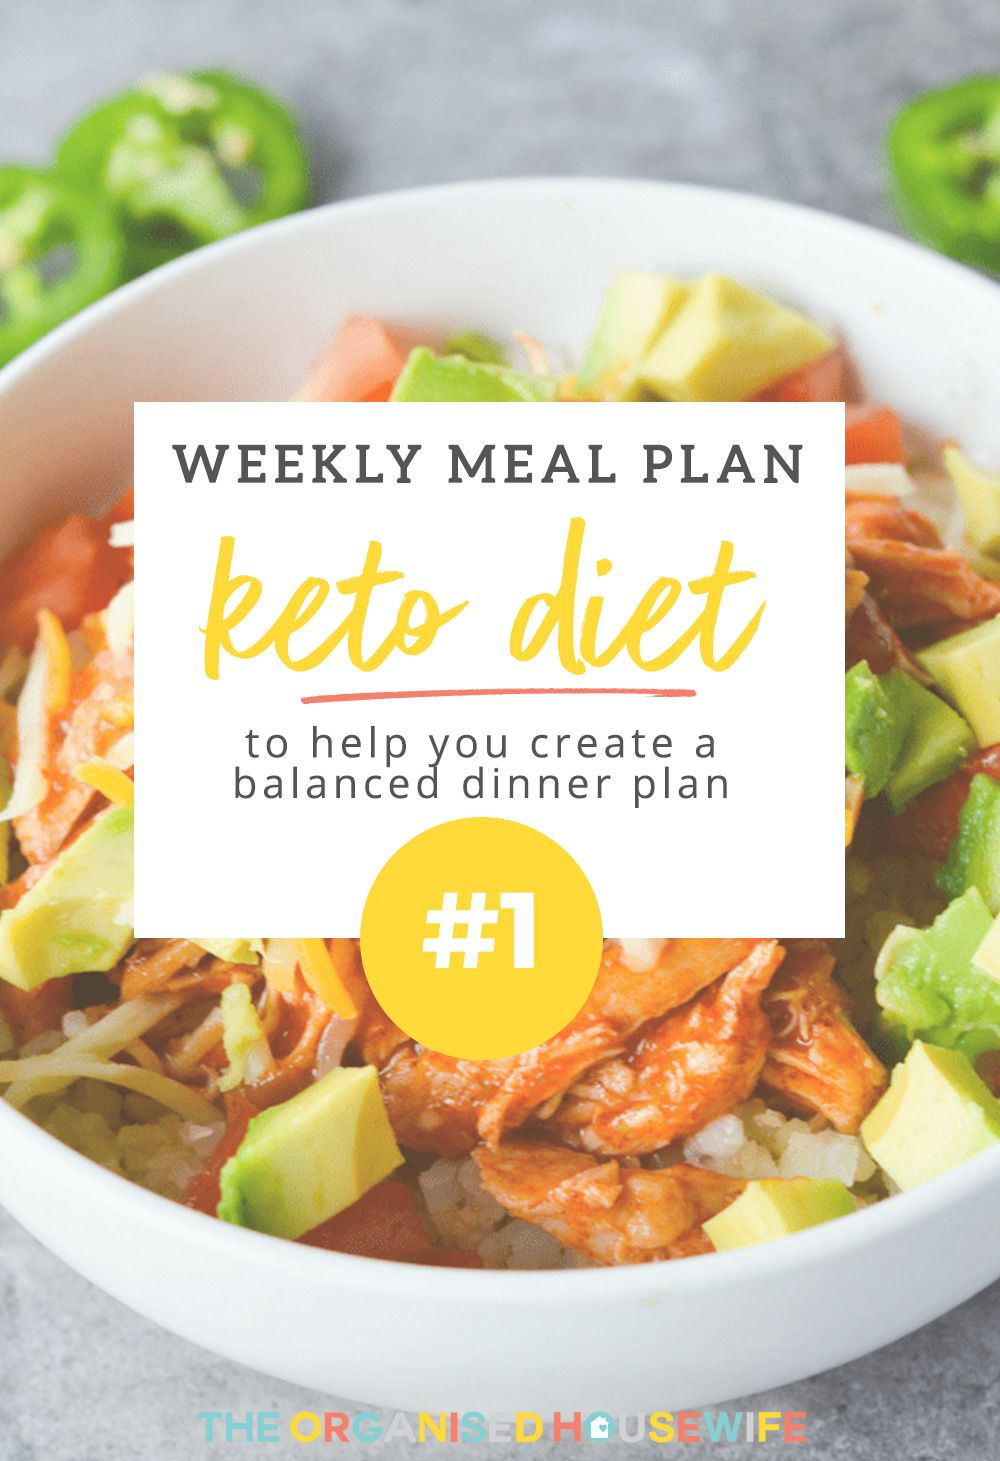 Today on the blog I have put together a Ketofriendly meal